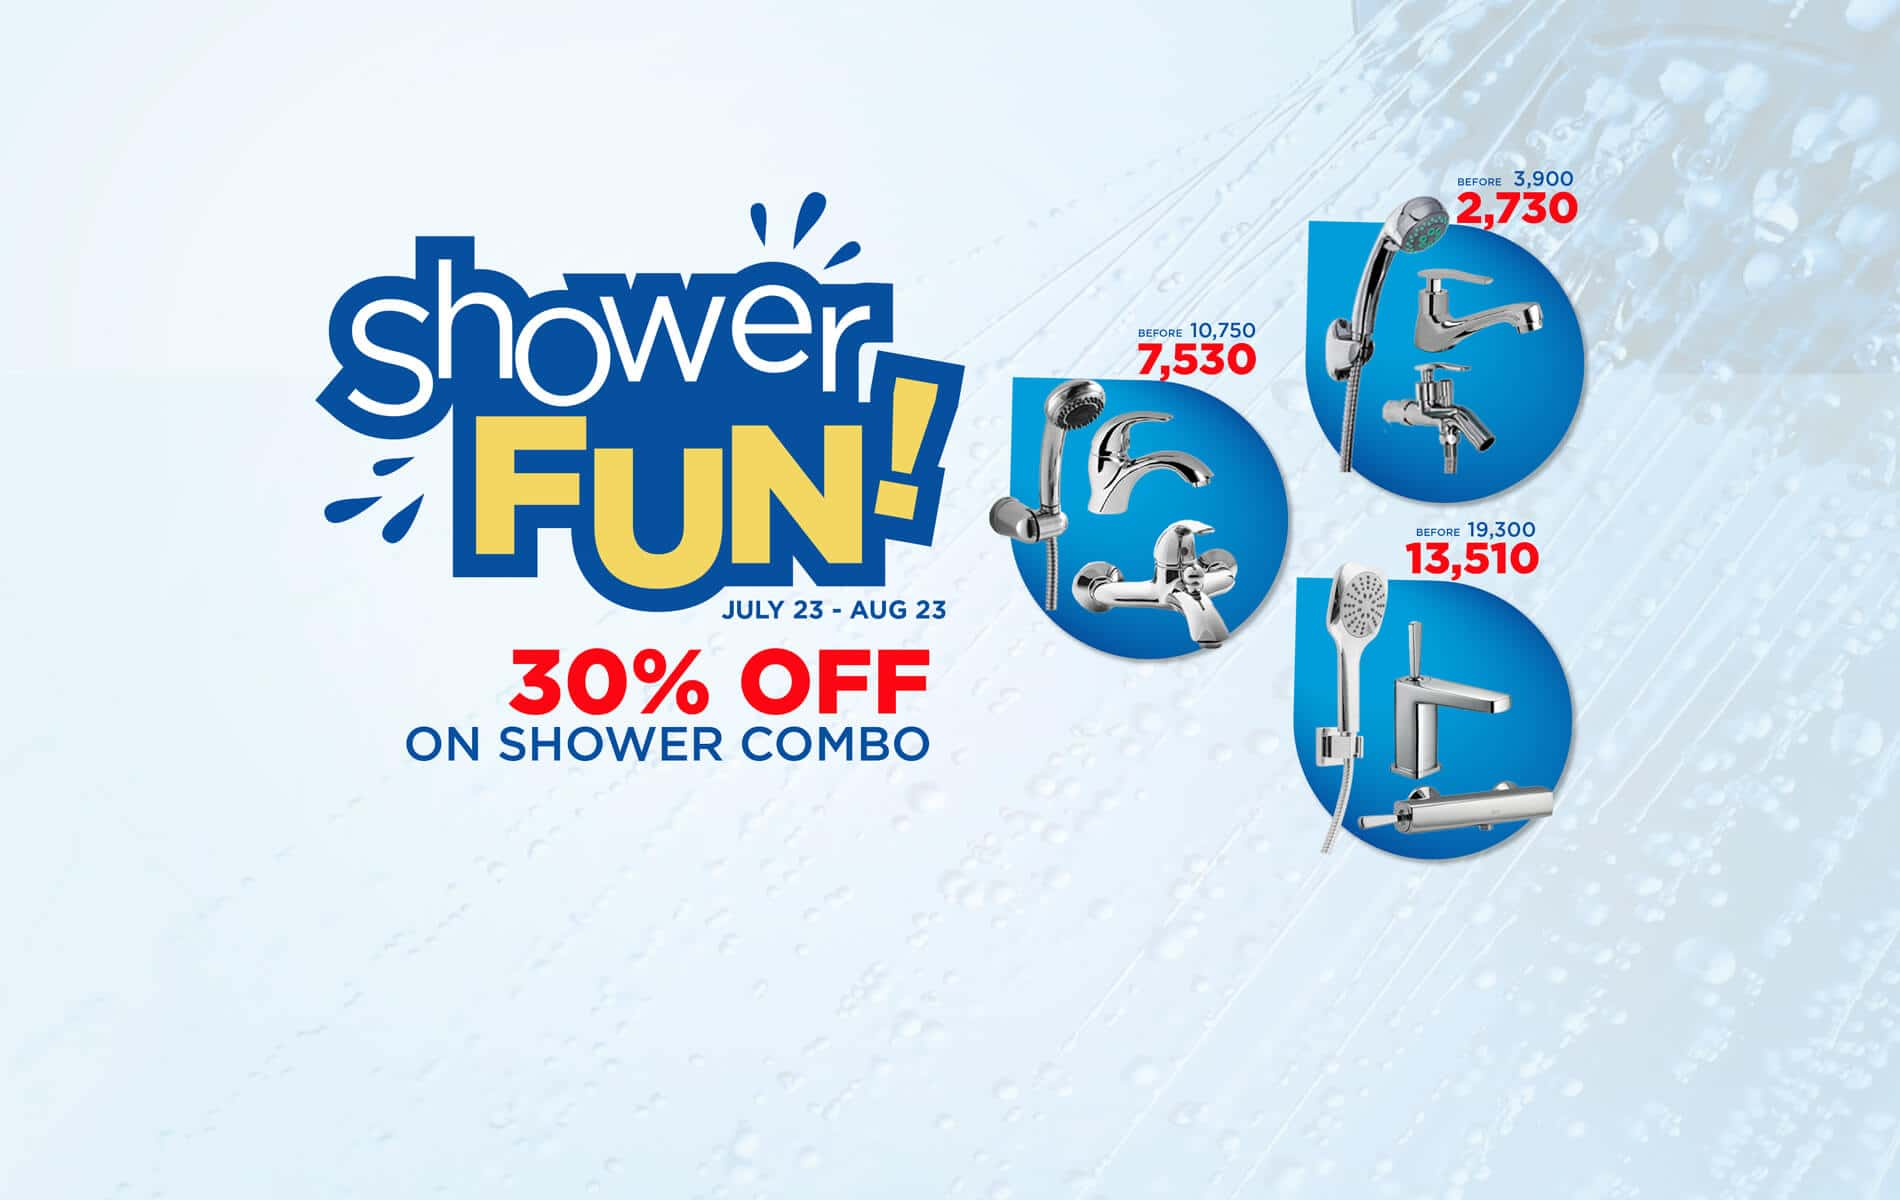 SHOWER FUN PROMO